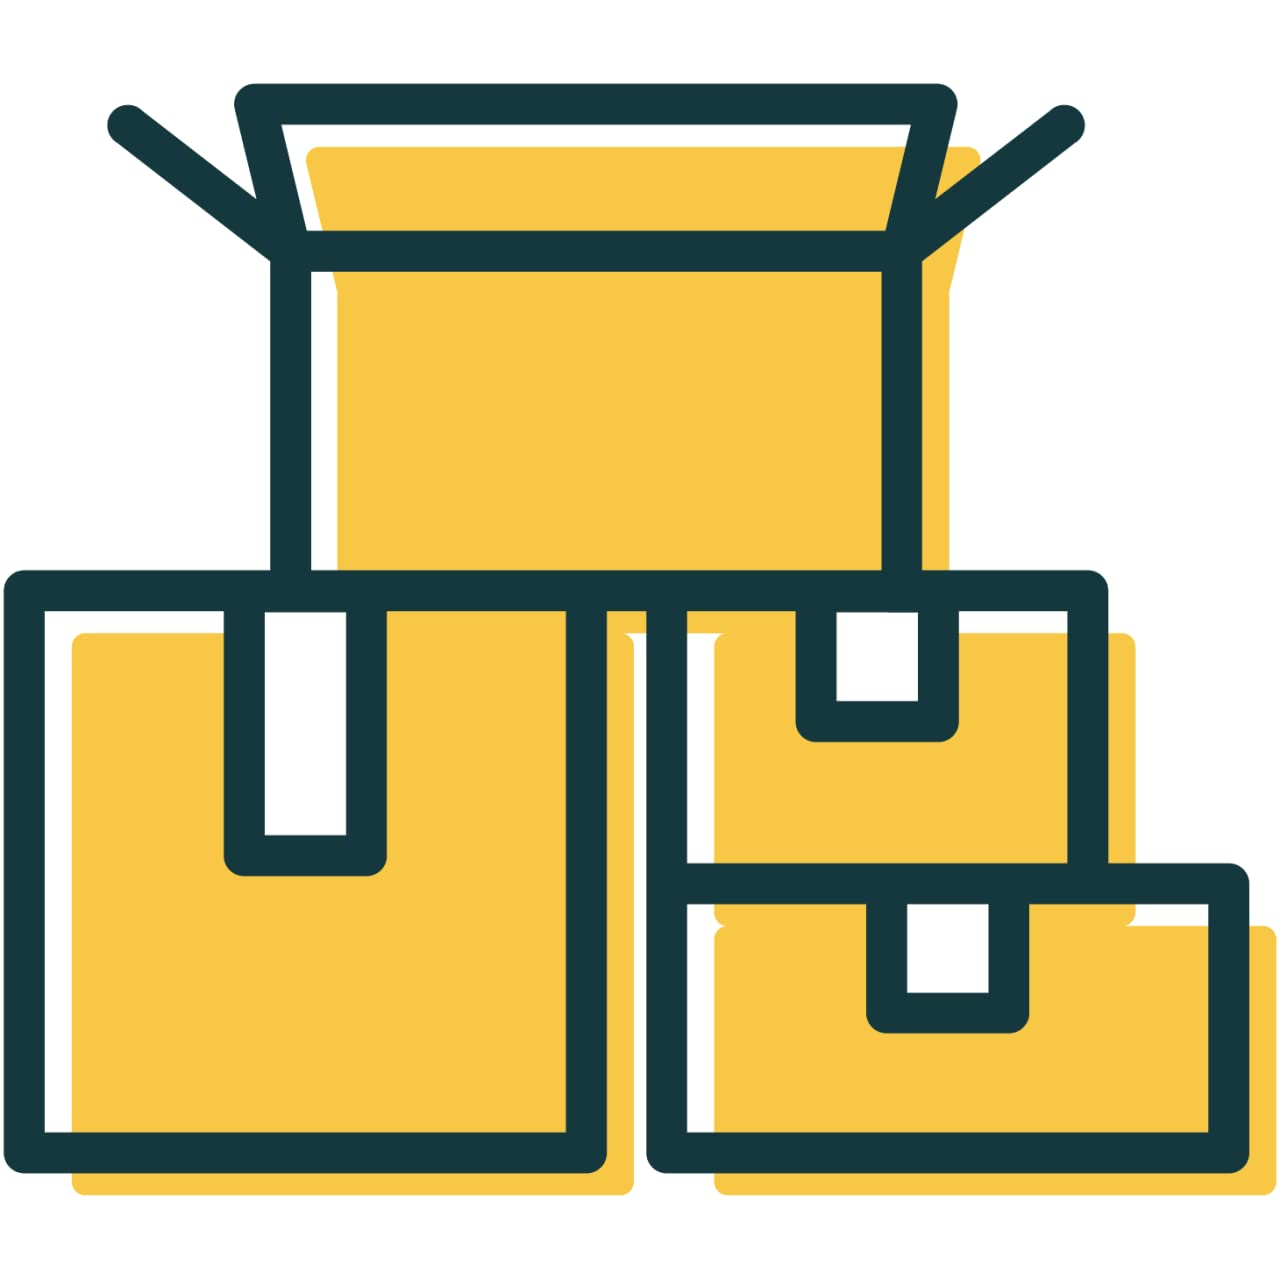 Send your products to a Fulfilment Centre